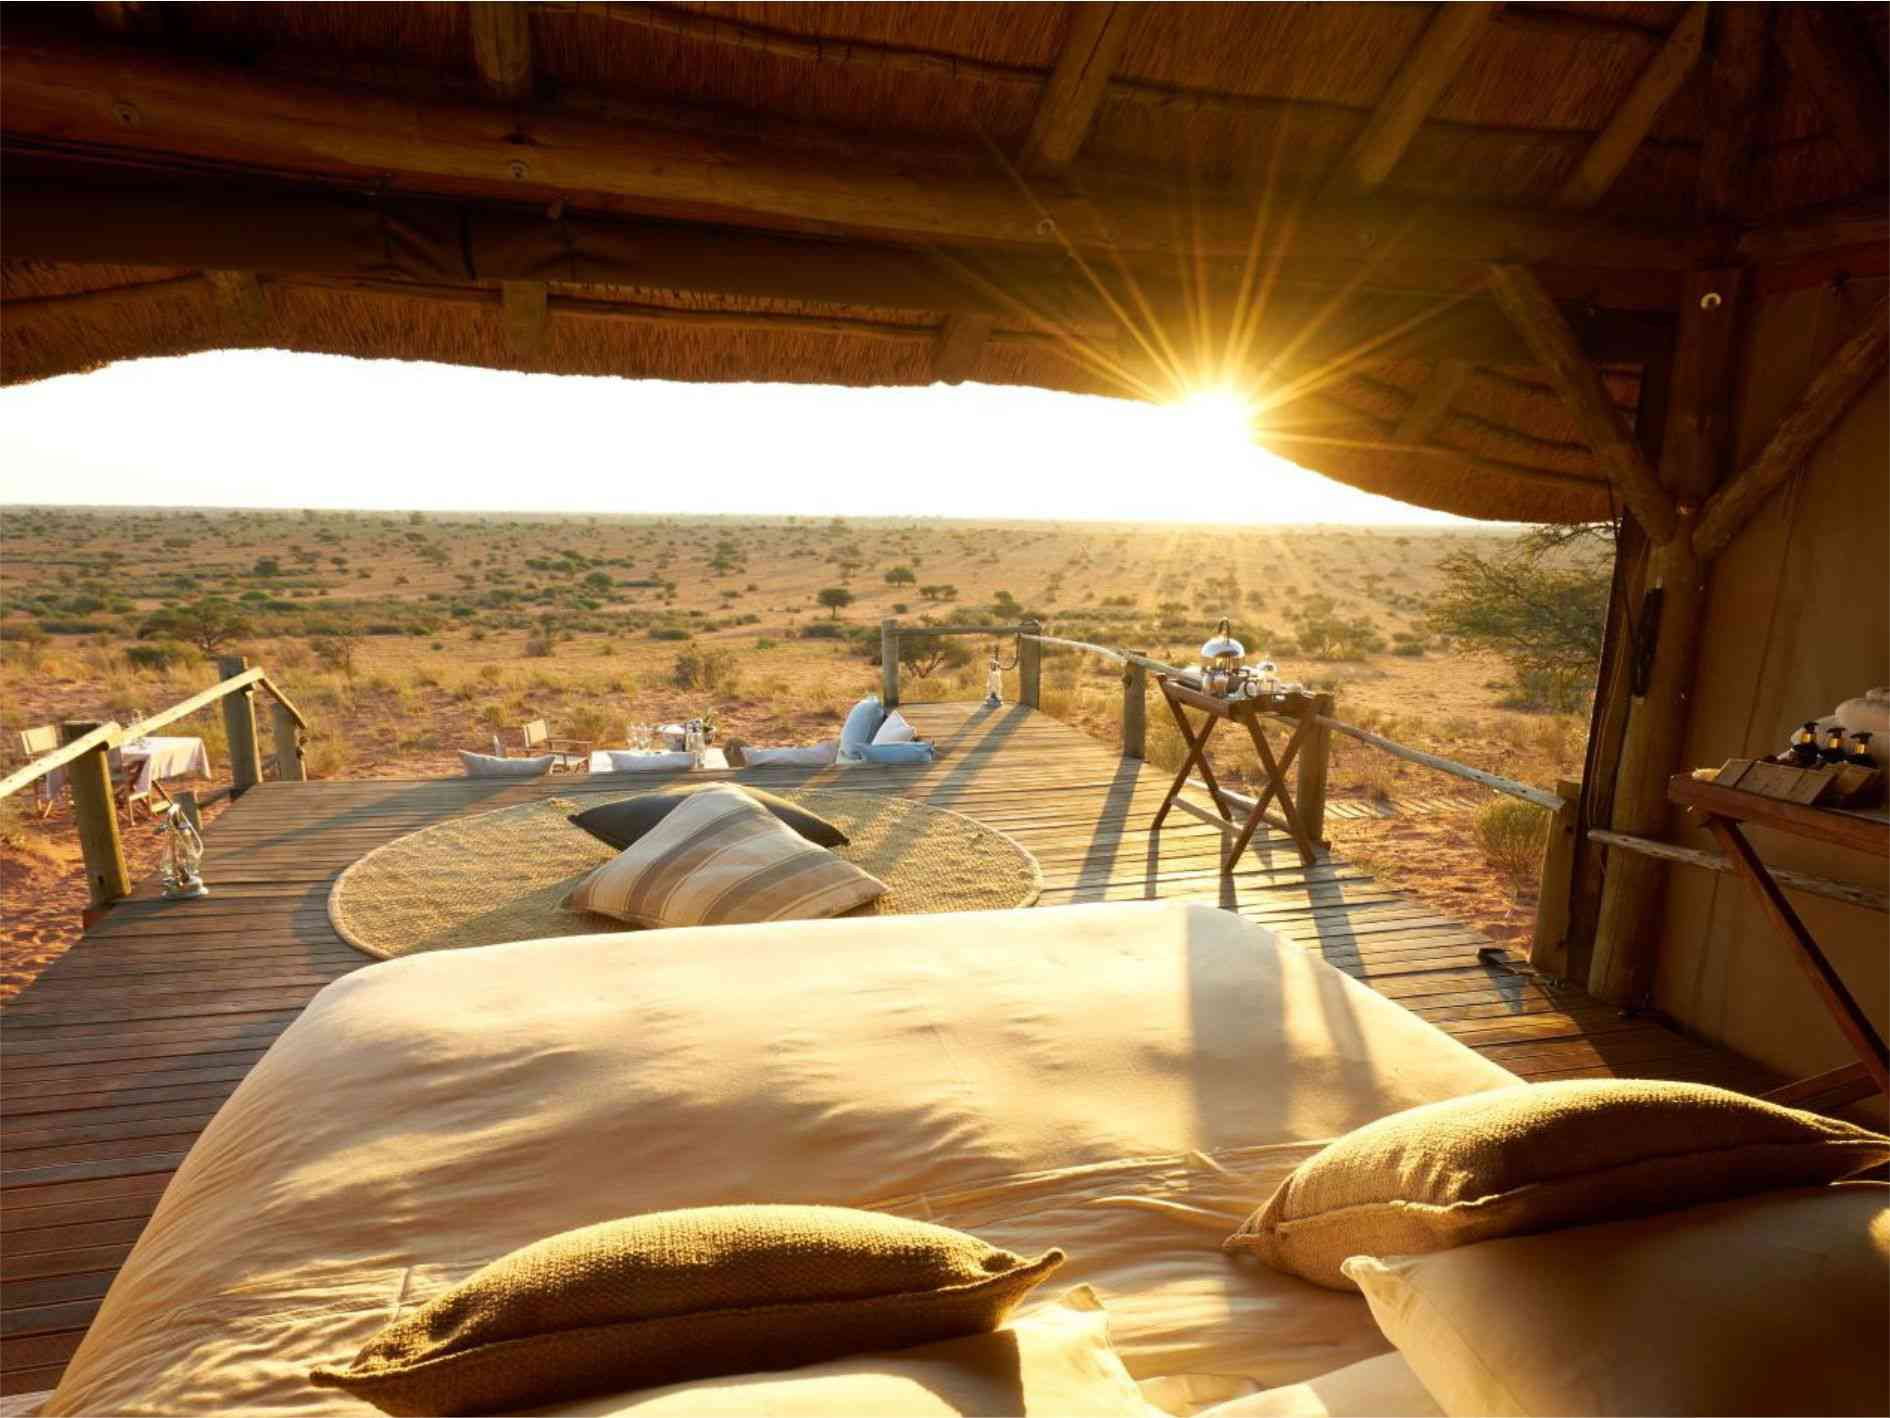 View from inside a room at Tsuwalu looking out on the savannah. There is a white bed and the sun is setting